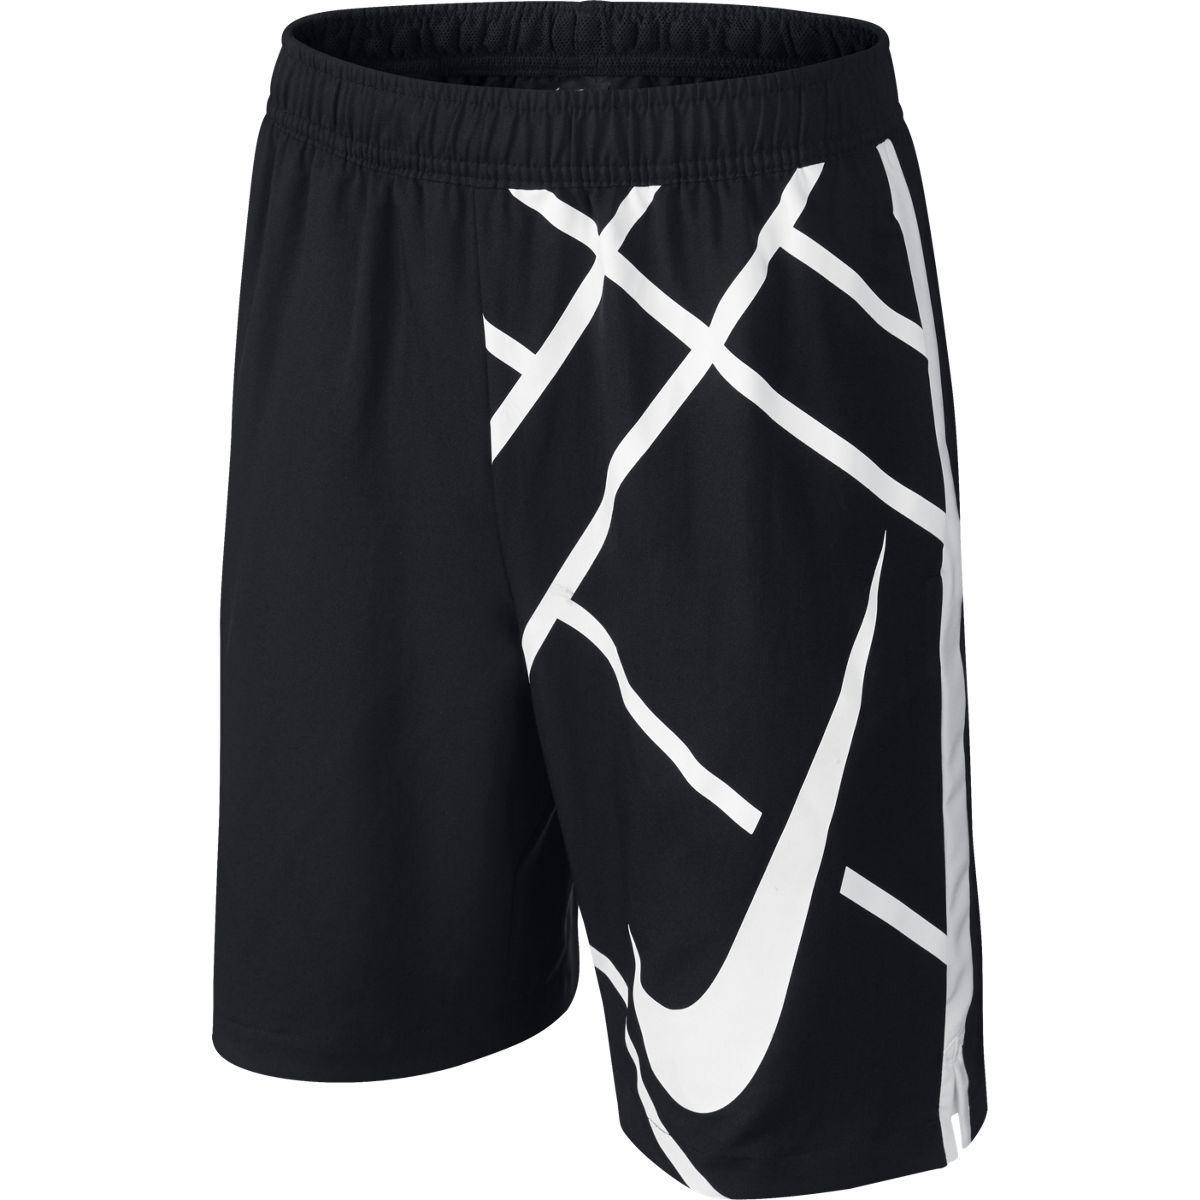 Nike Boys 8 Inch Court GFX Shorts - Black/White ...